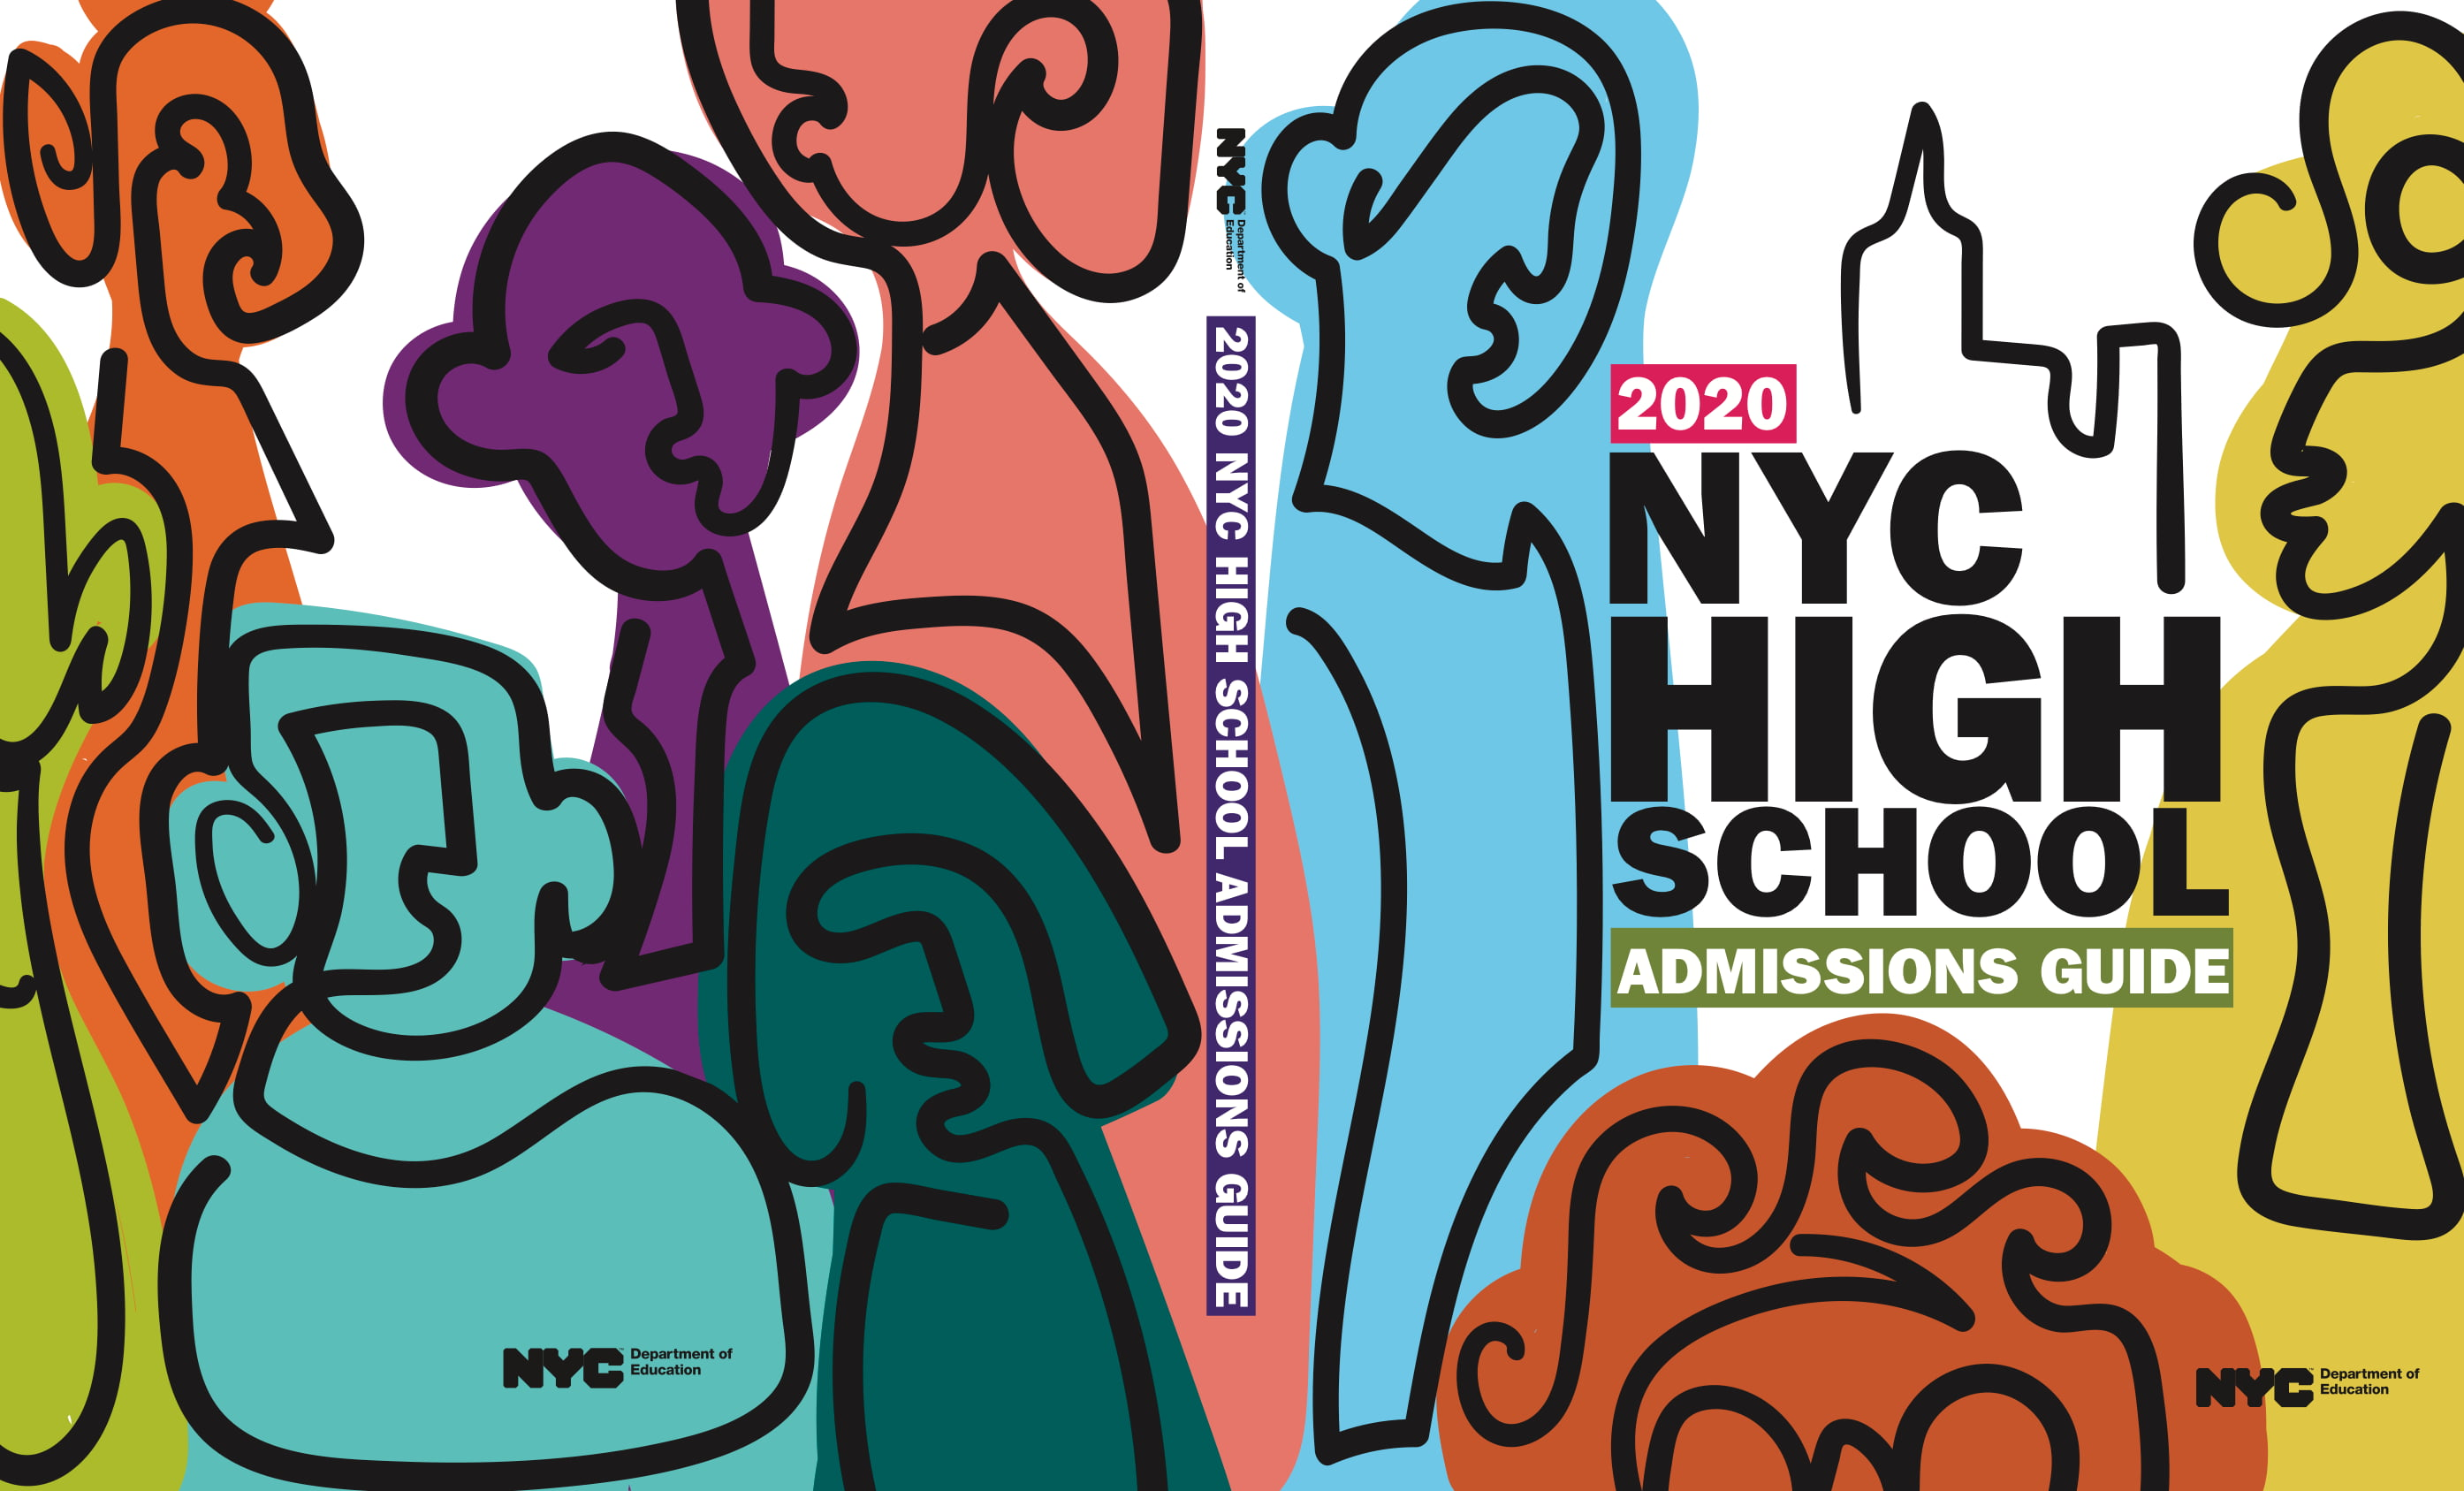 The cover showcases three abstract figures of people with the NYC skyline represented by a single black line in the background. The back cover six different figures in different, colors and sizes.